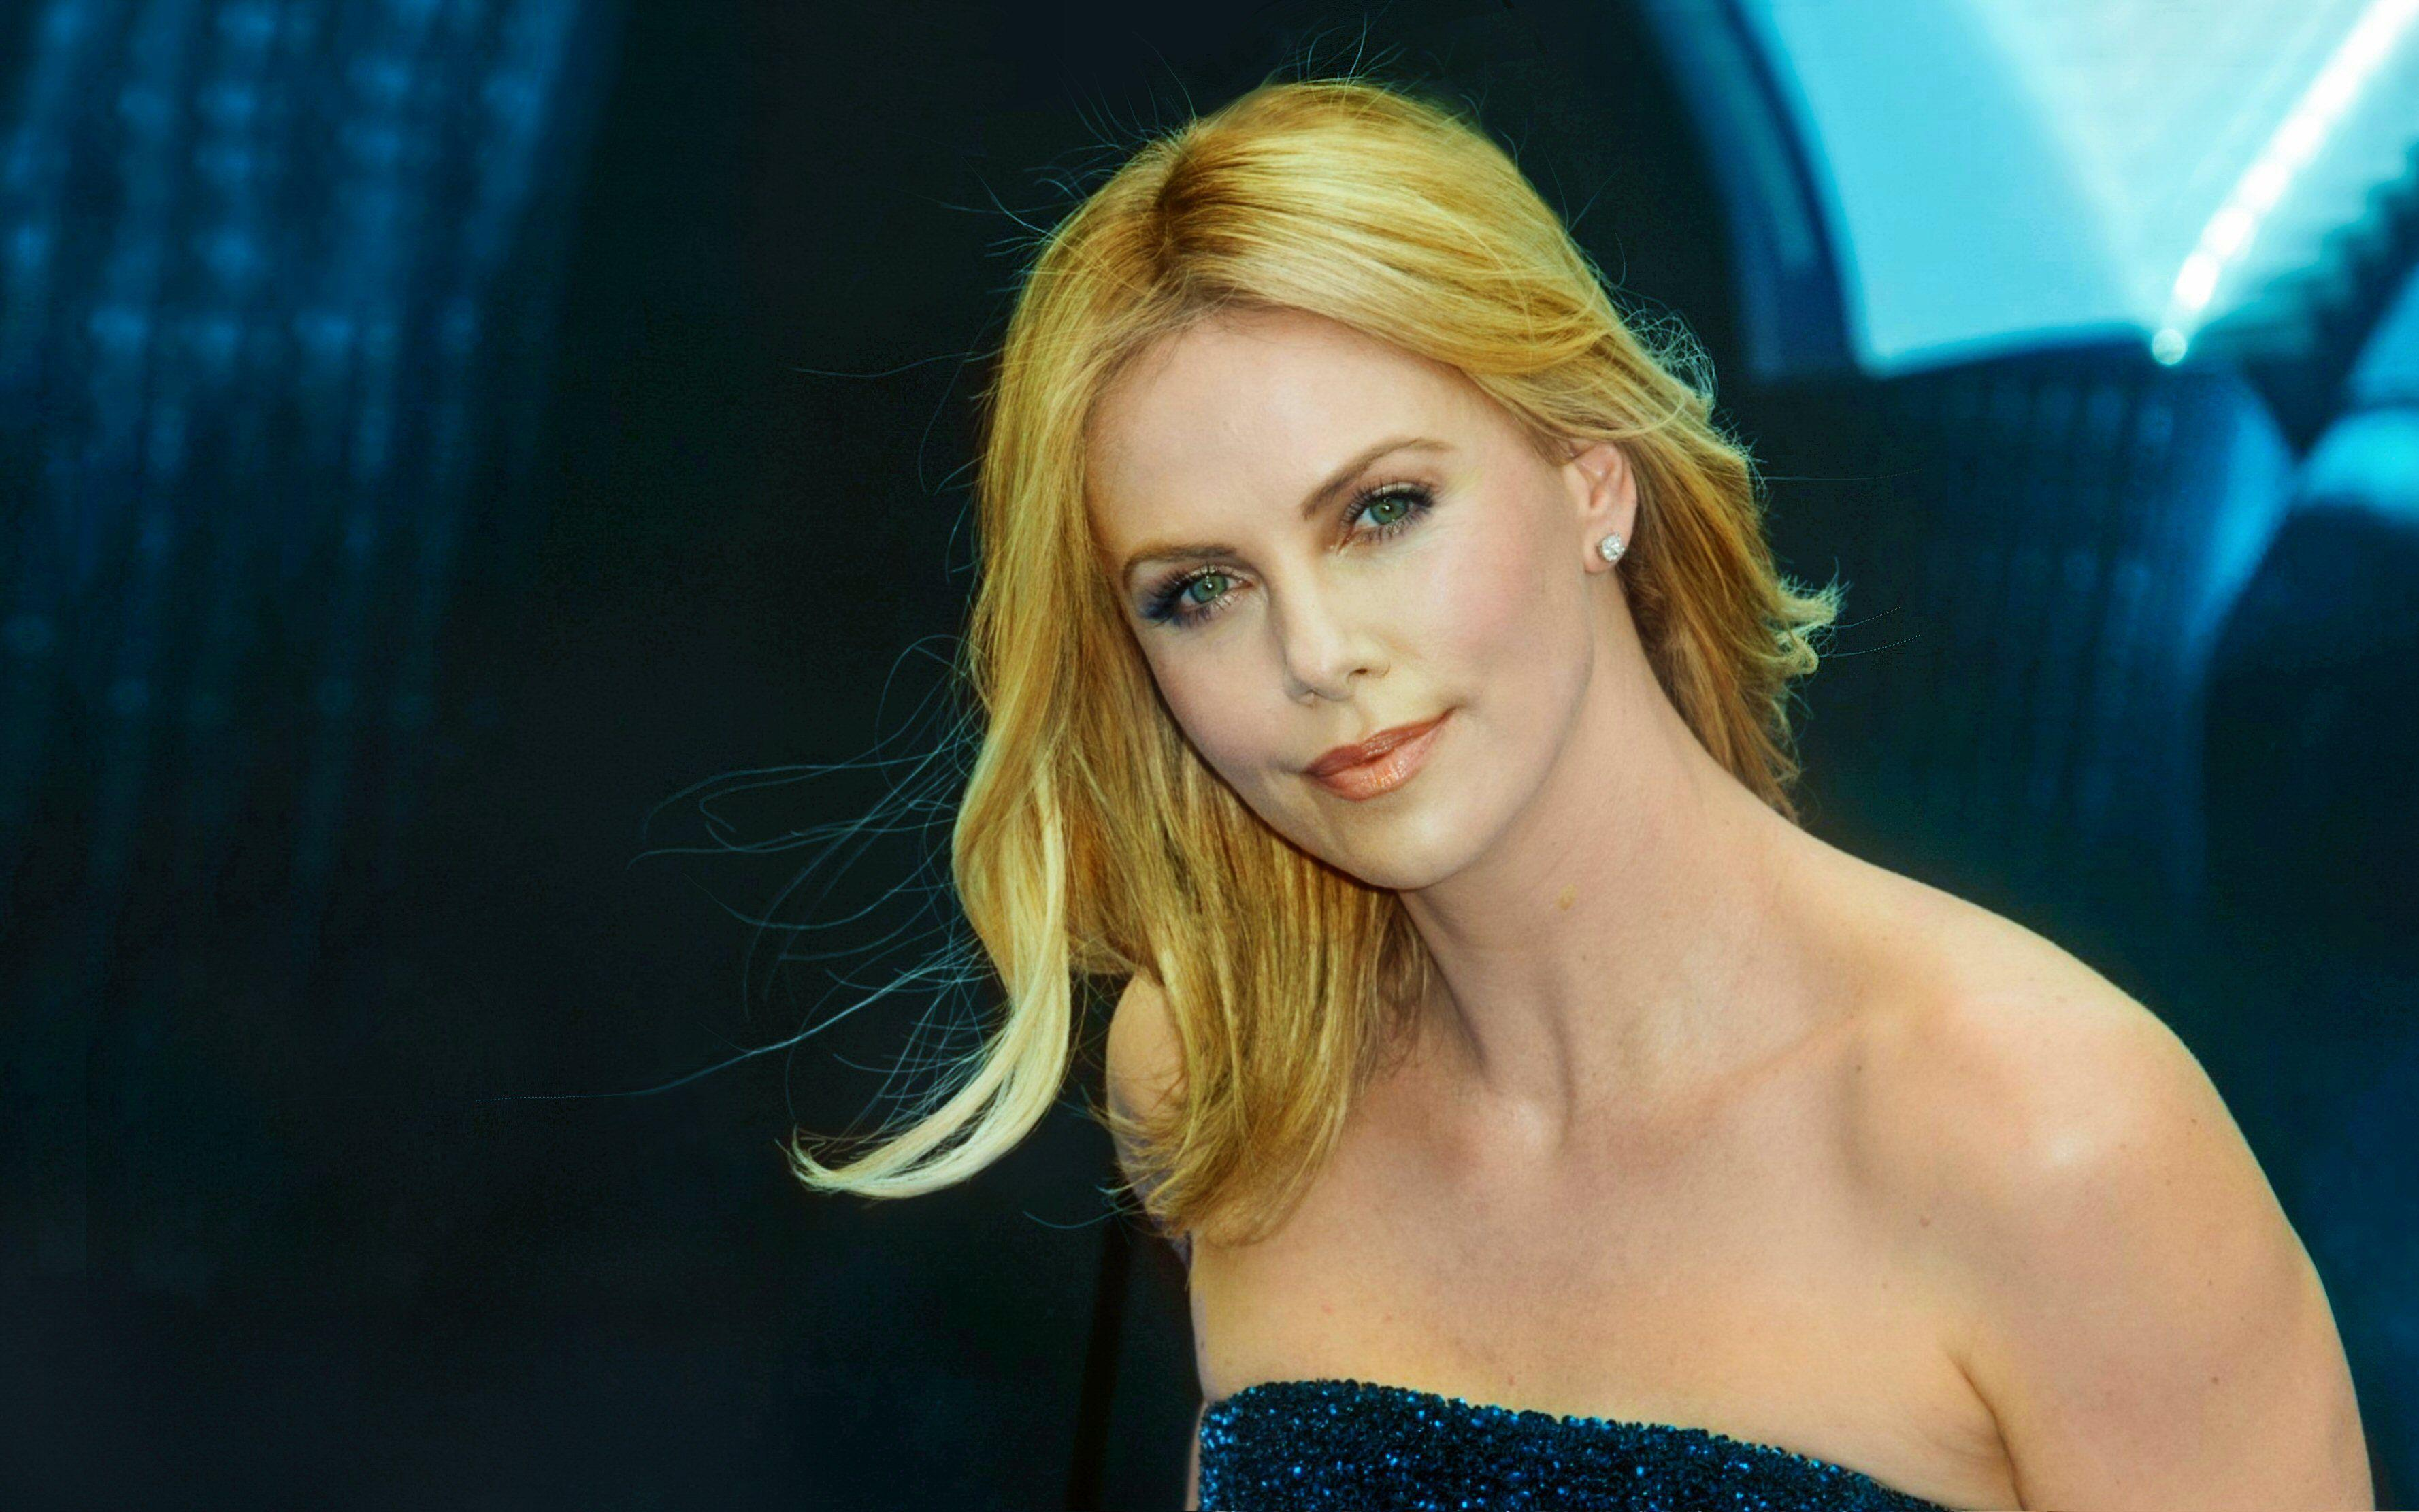 274 Charlize Theron HD Wallpapers | Backgrounds - Wallpaper Abyss